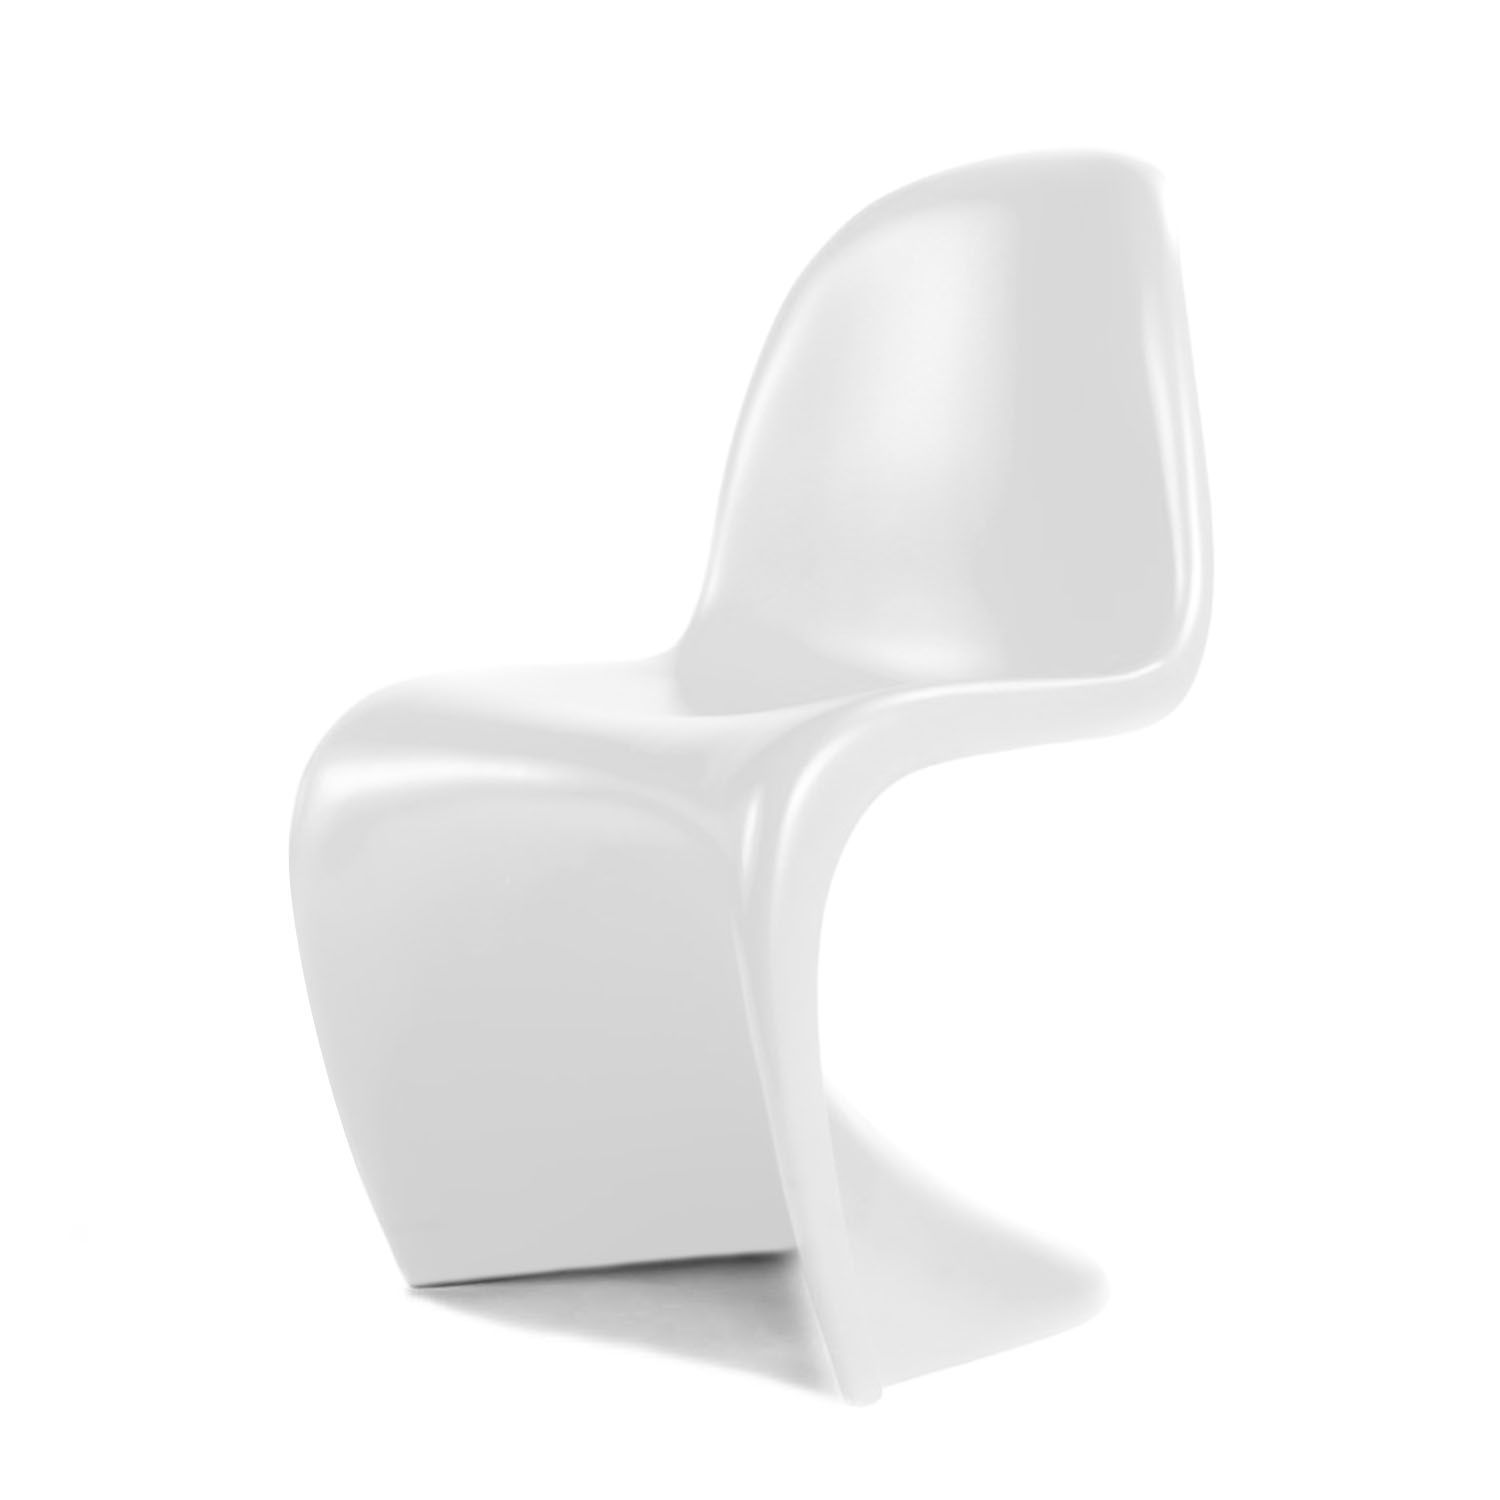 Silla Cuore Silla Phanton En Blanco En Homevictim Shop Sillas Icono